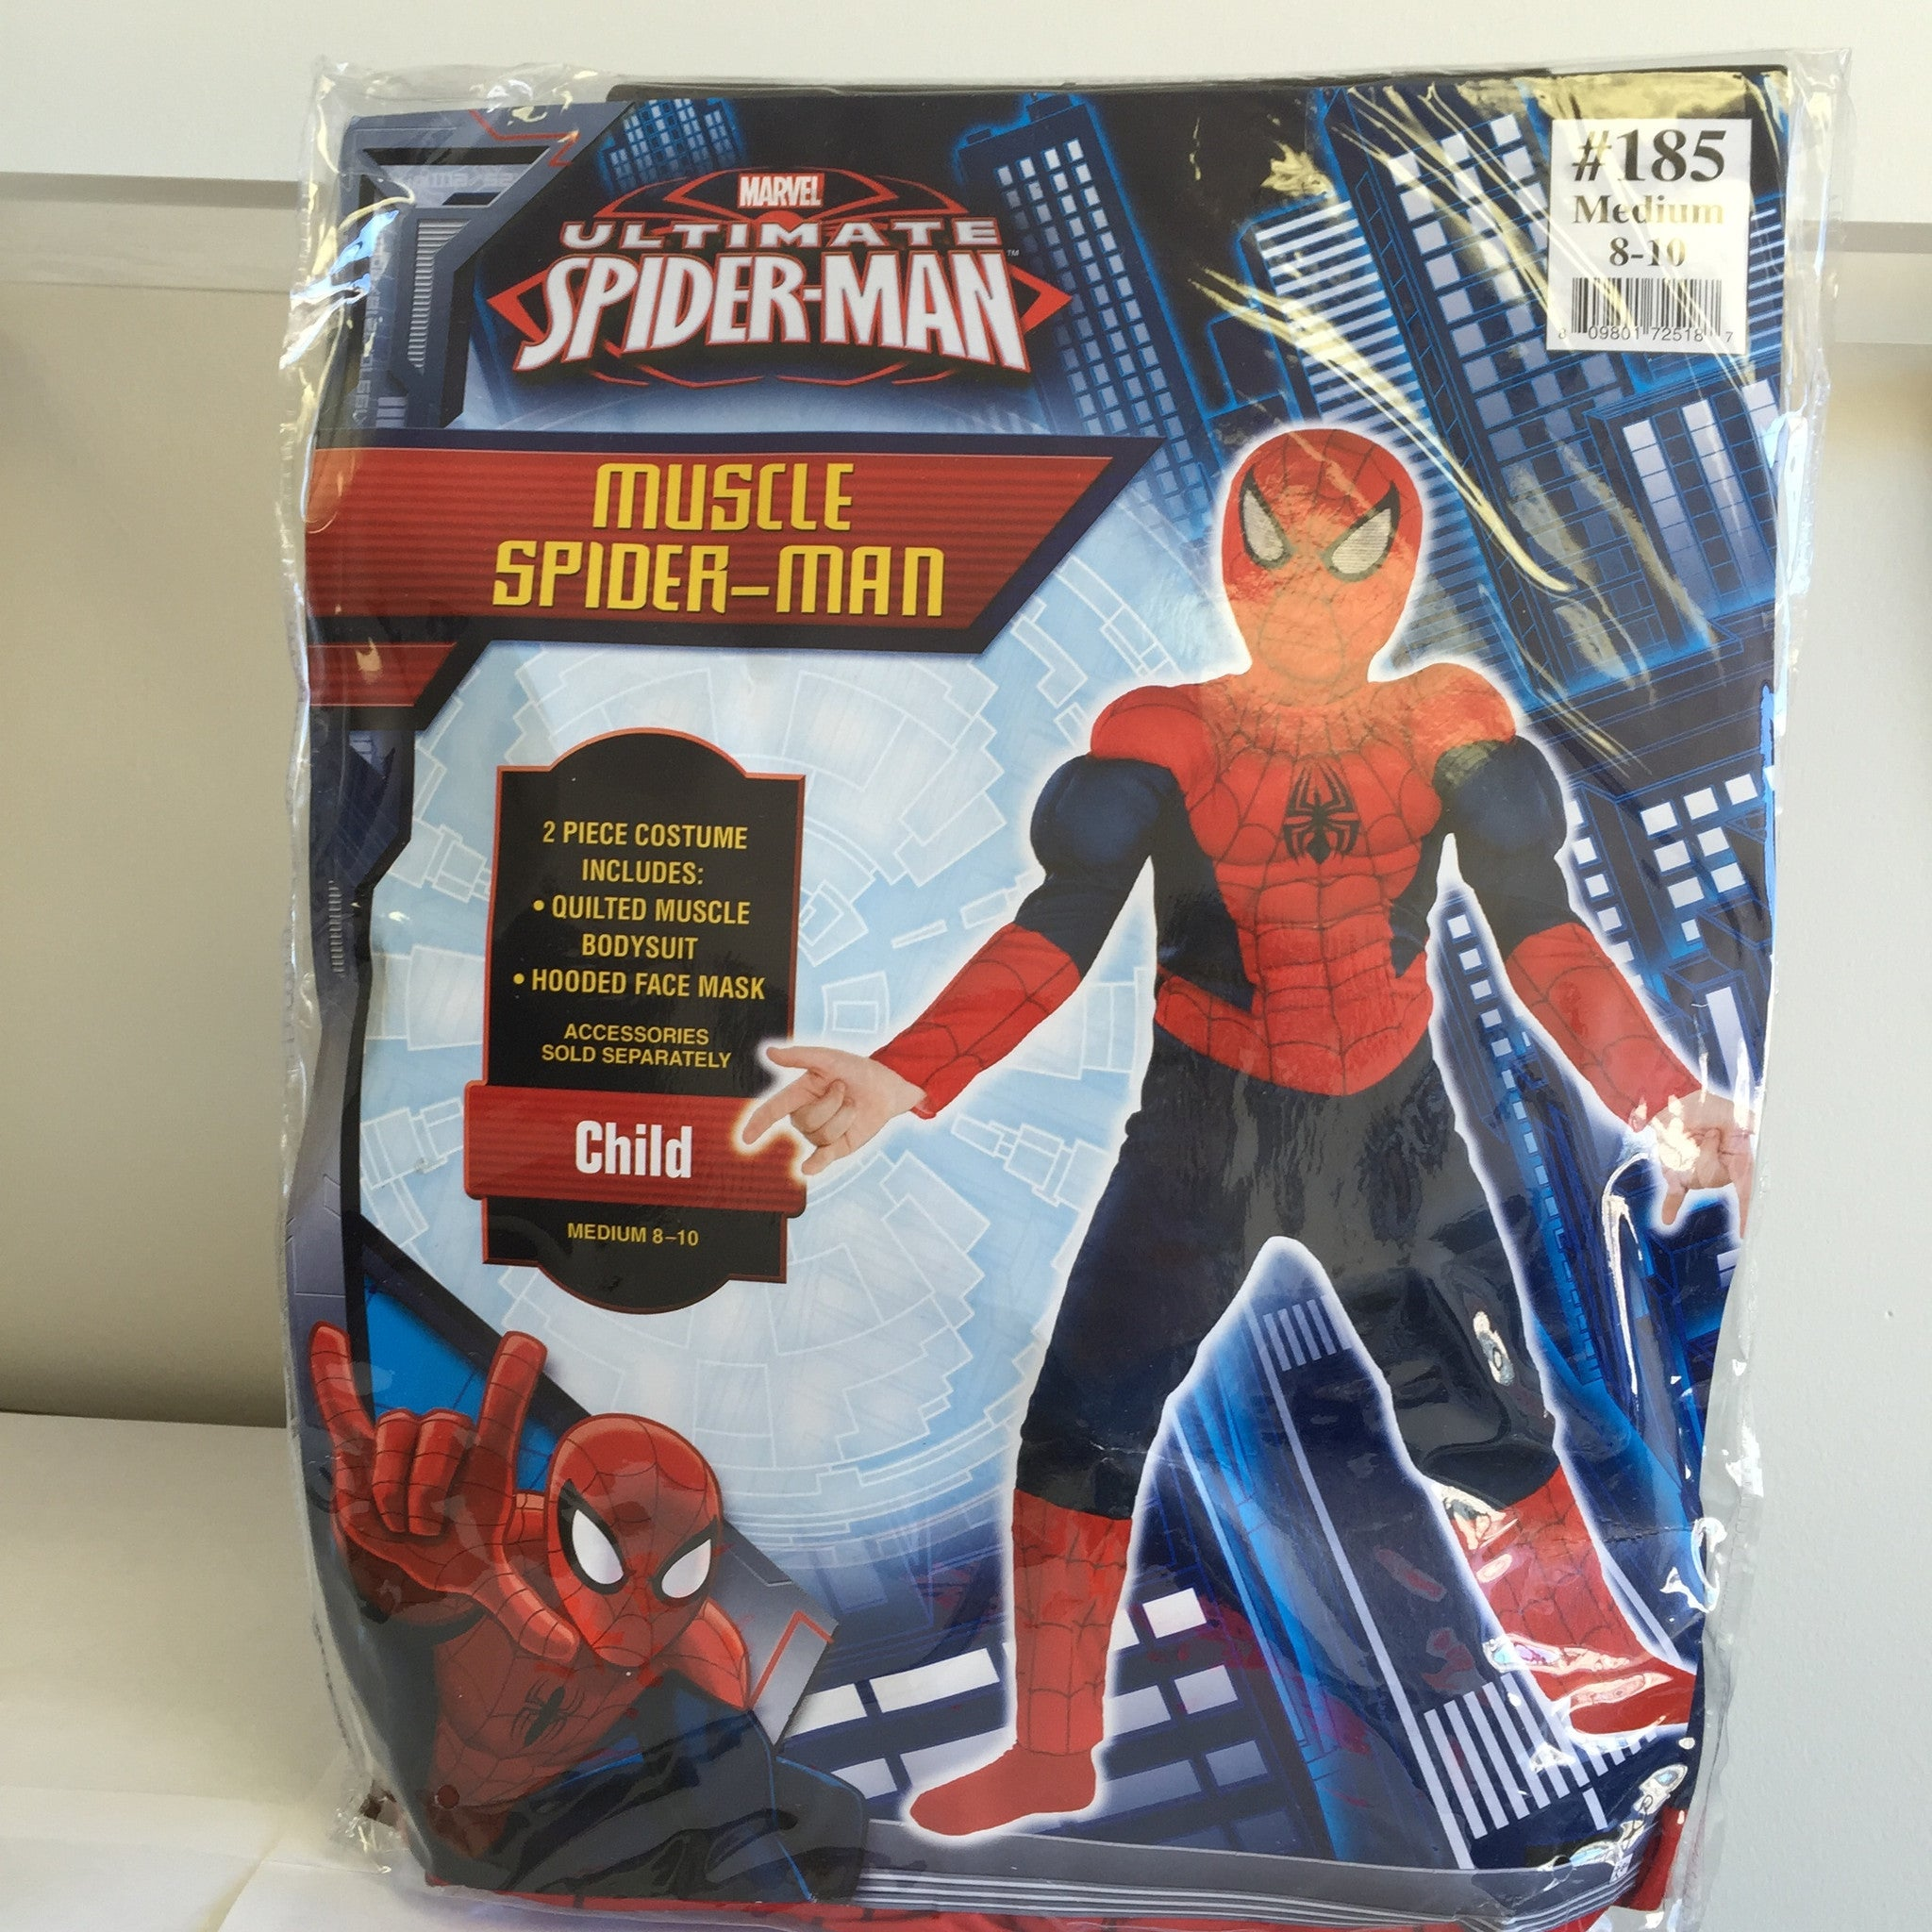 NEW MArvel Ultimate Spiderman Muscle Halloween Child Costumes  sc 1 st  LiquidationMania.com & NEW MArvel Ultimate Spiderman Muscle Halloween Child Costumes ...